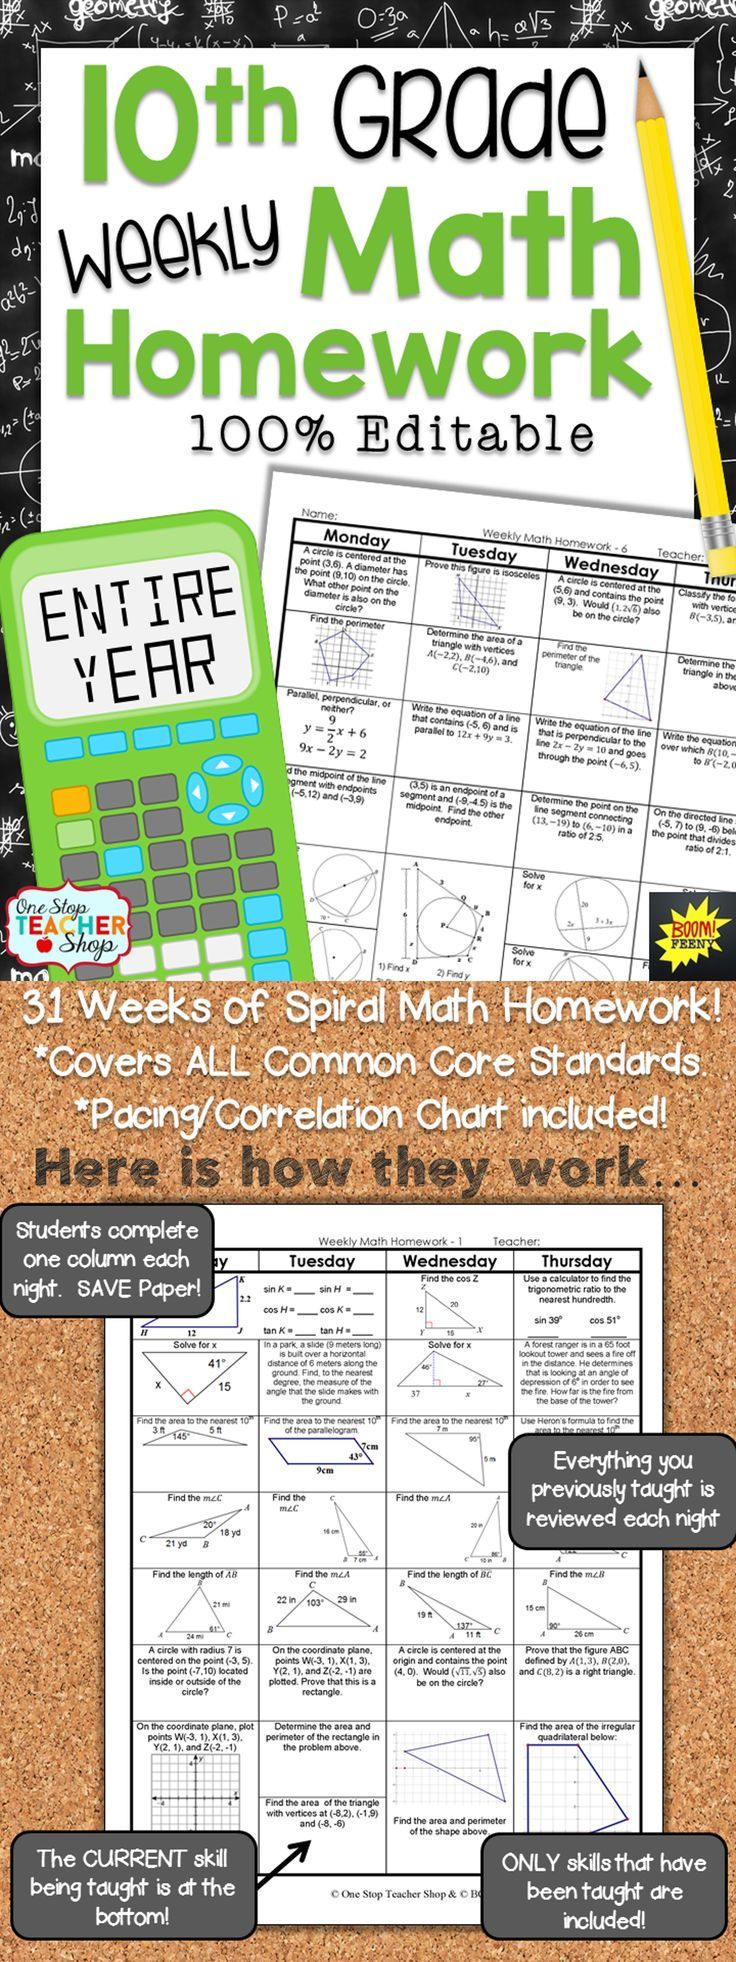 TENTH GRADE Geometry Spiral Math Homework, Warm up, or Math Review for the ENTIRE YEAR!! -- 100% EDITABLE -- Aligned with the High School Common Core Geometry Standards. ANSWER KEYS included. Paid